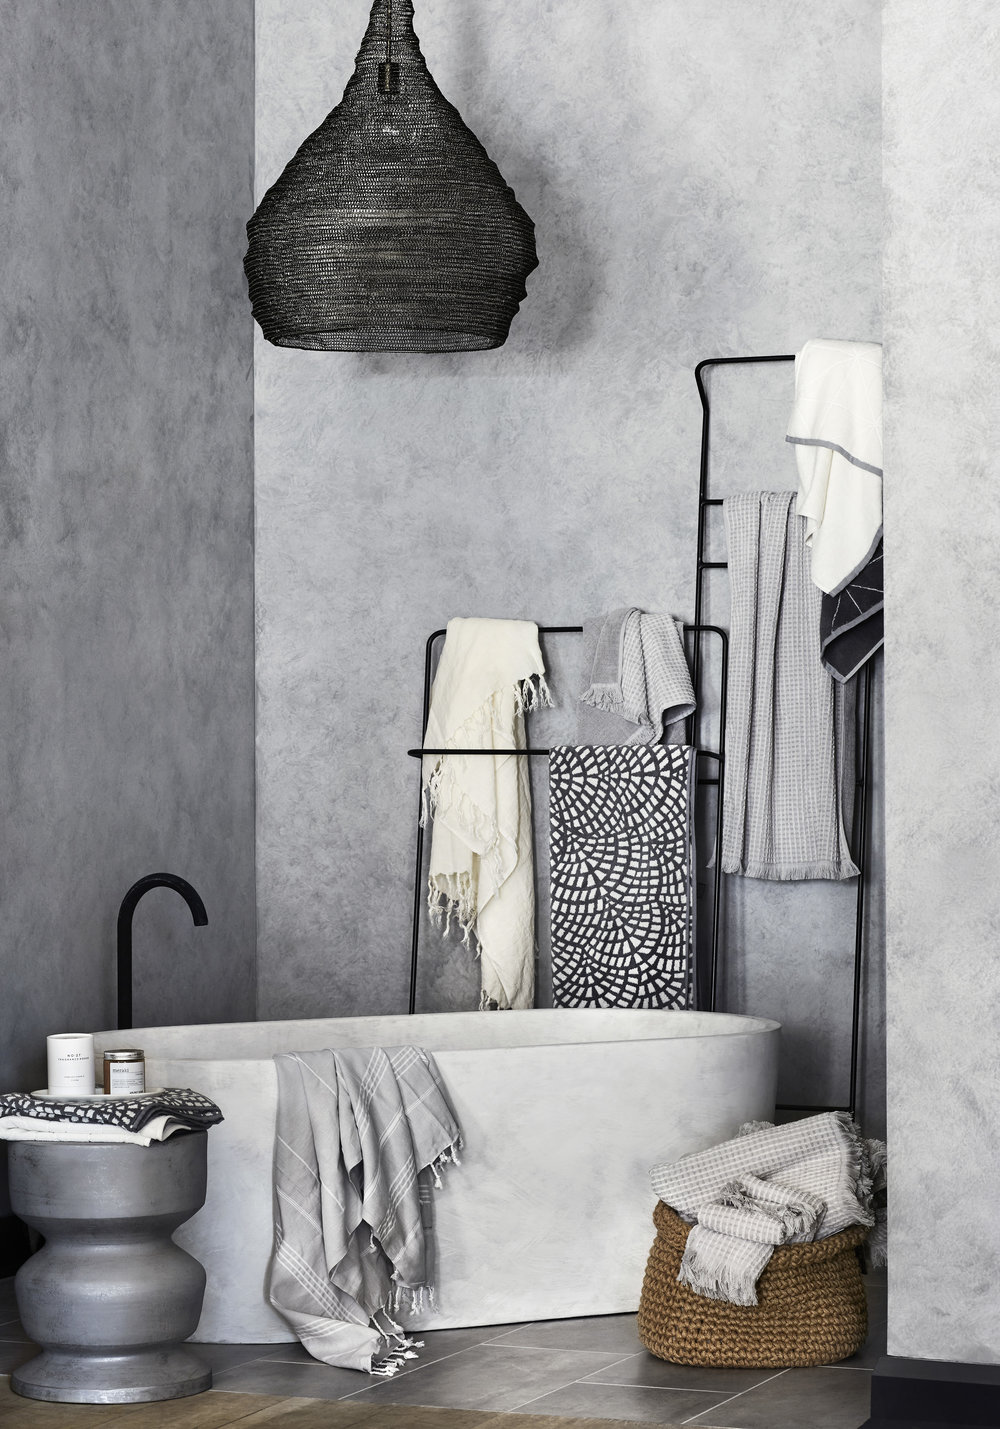 Bathroom bliss - experience textures and finishes at the new  AURA HOME  Malvern store. Photo - Tess Kelly.